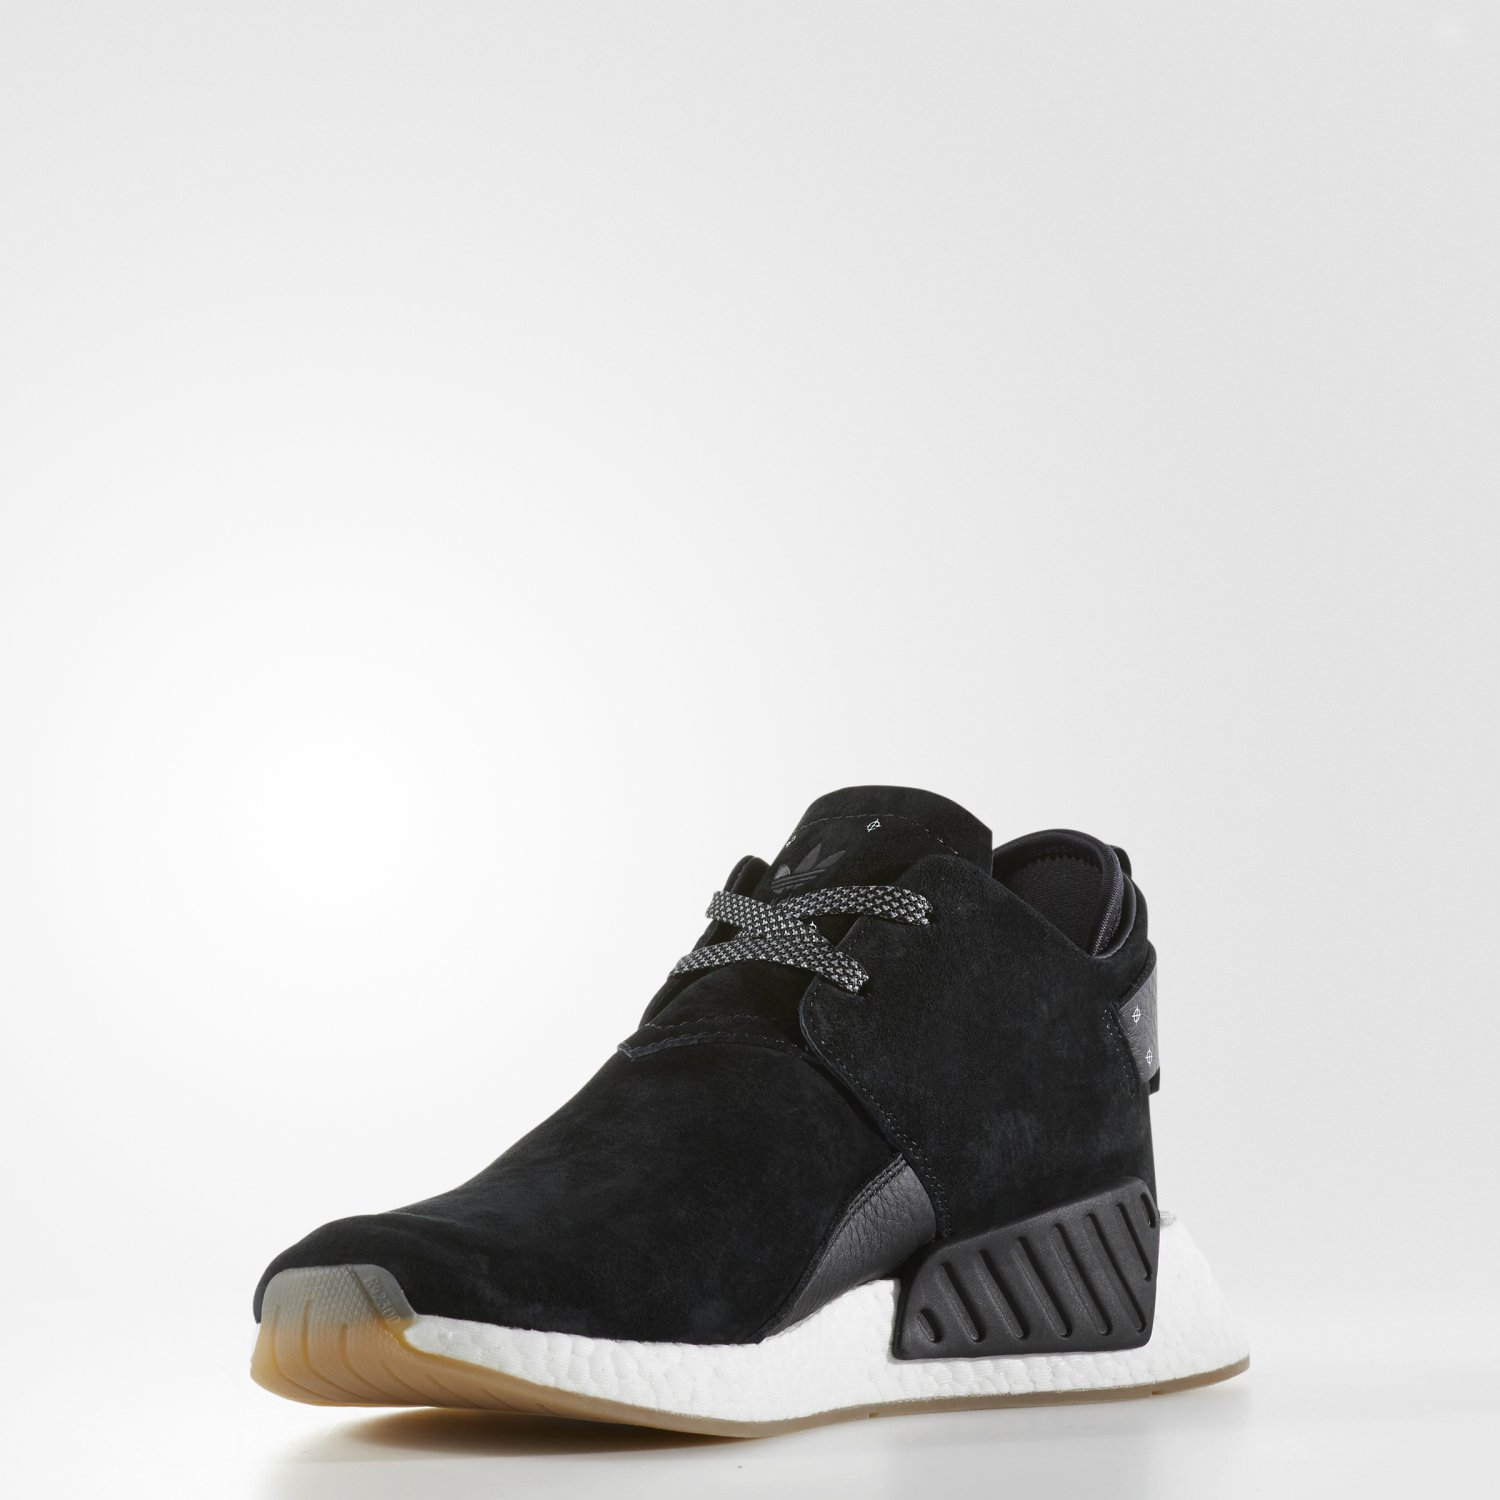 adidas-nmd-c2-premium-suede-by3011-release-20171020